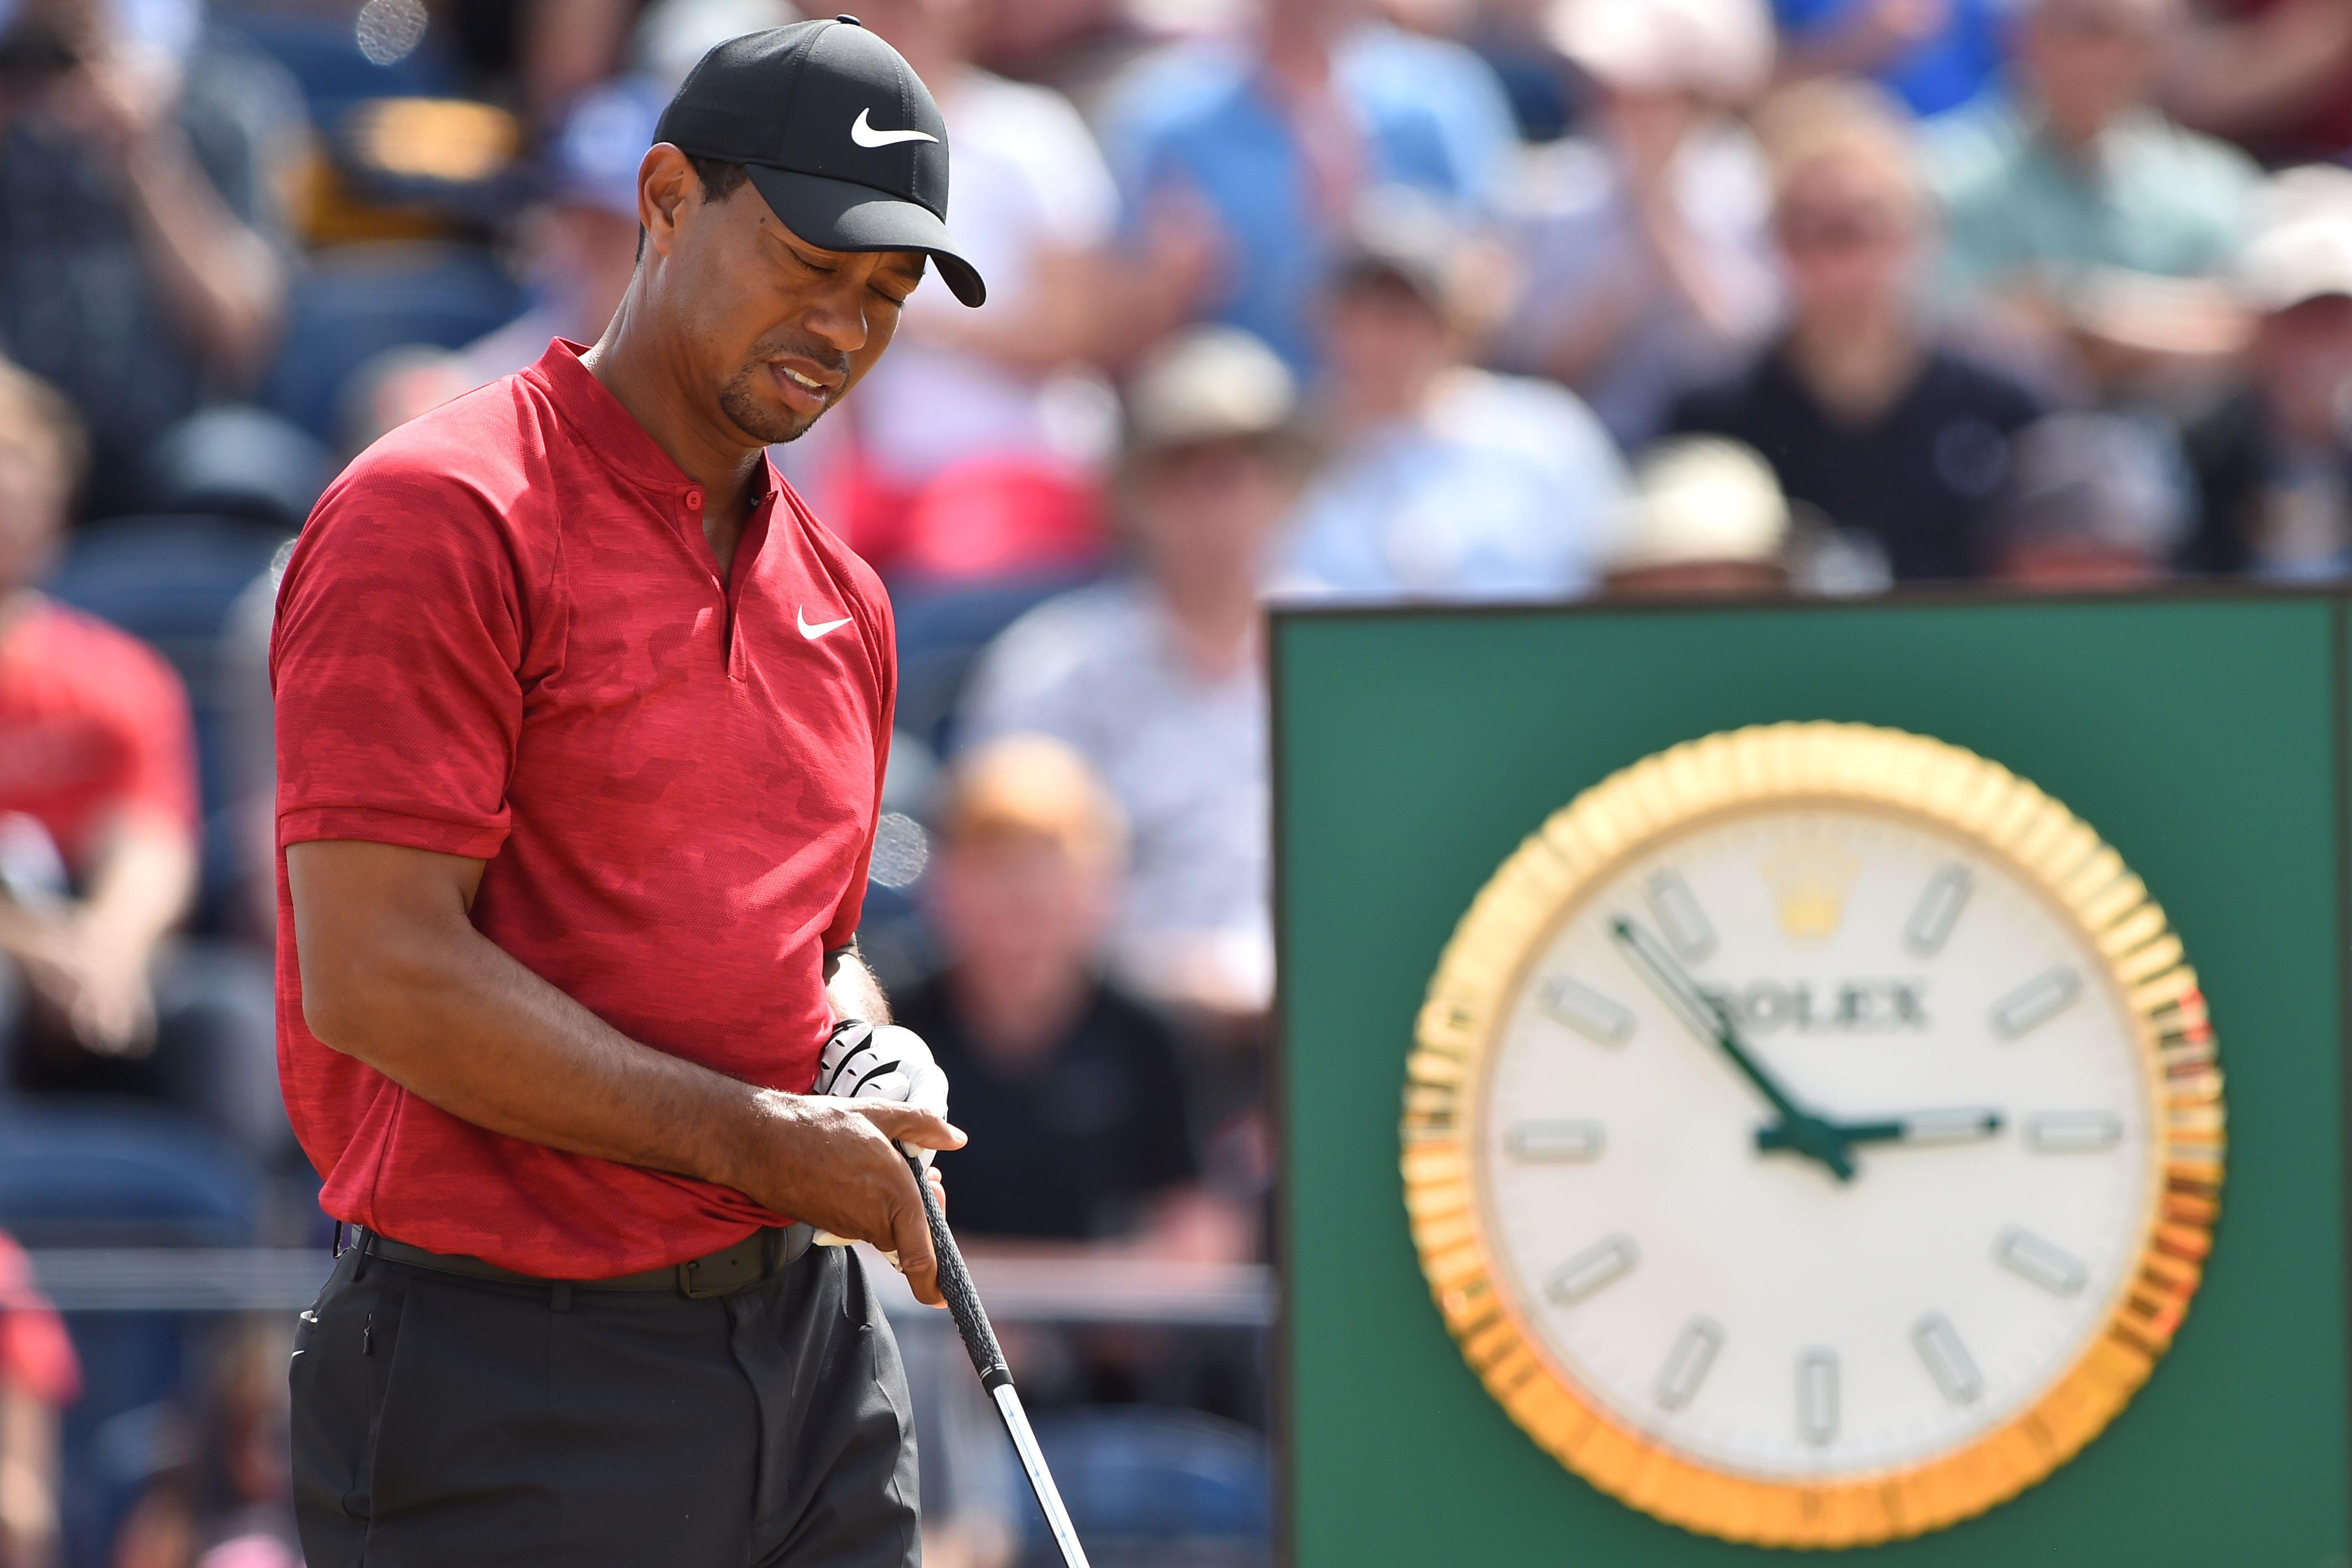 Woods, 42, came agonisingly close to winning The Open after he led during the final round